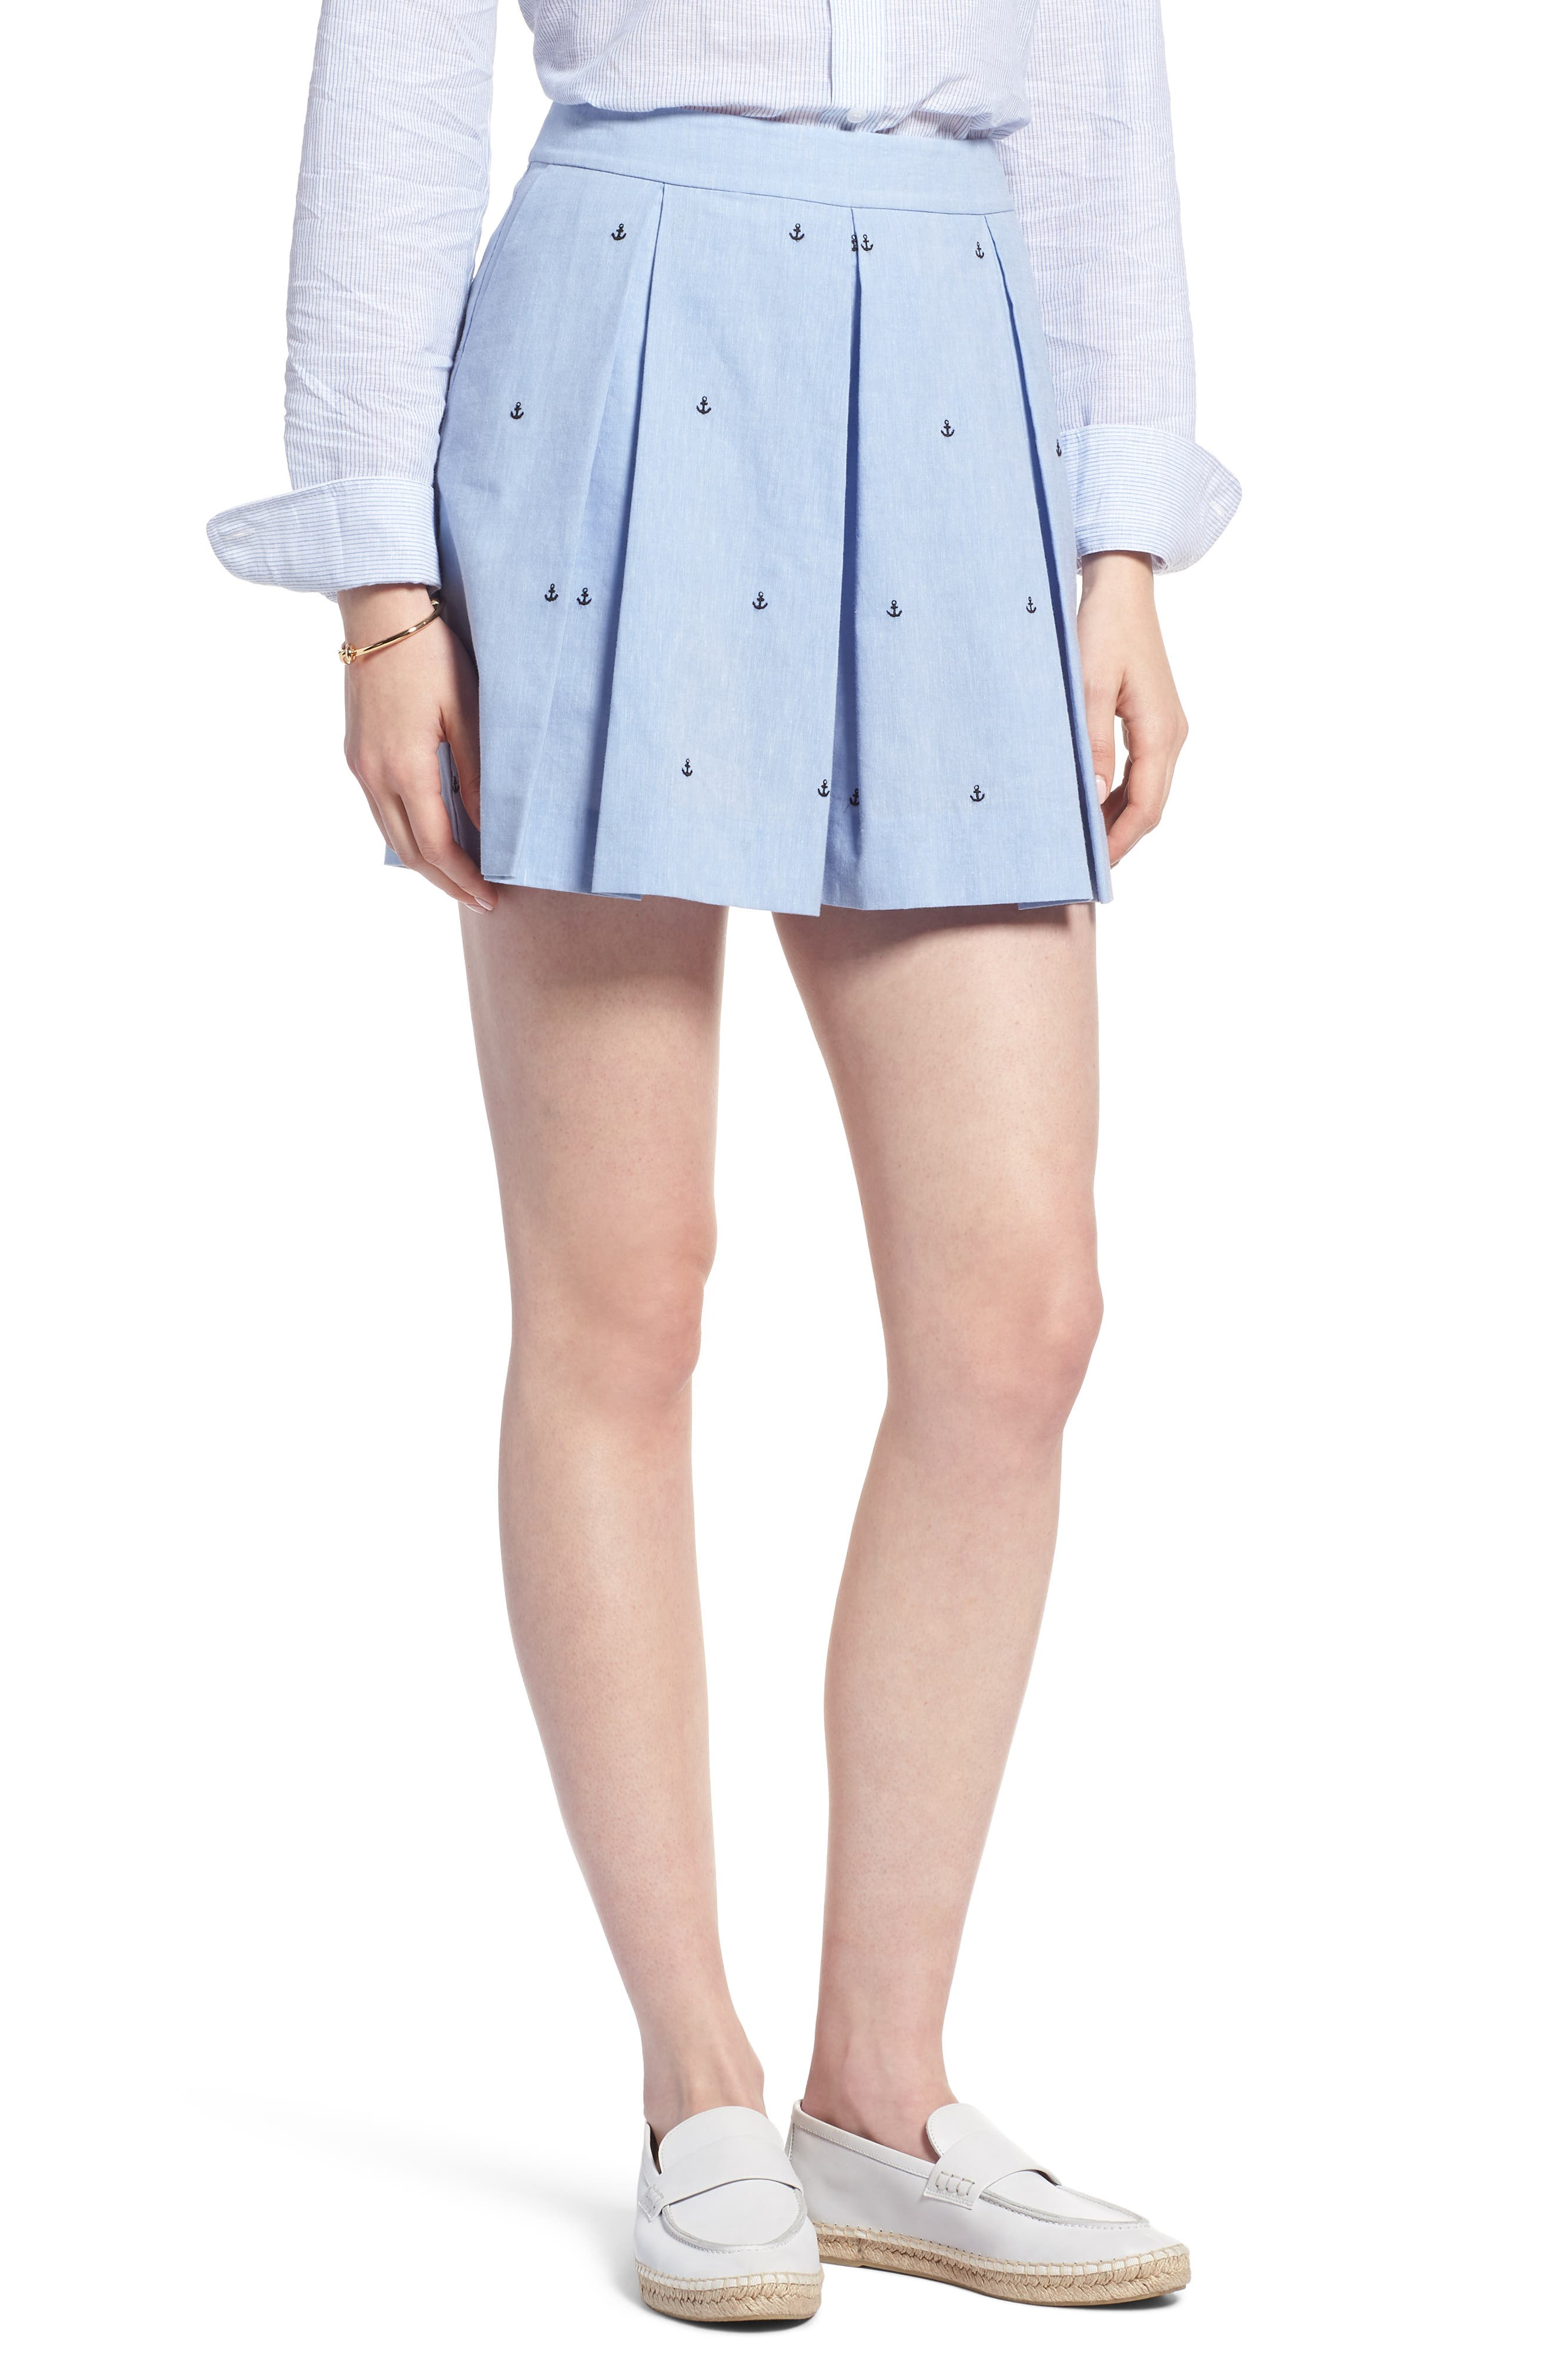 Anchor Embroidery Pleated Cotton Shorts,                         Main,                         color, Chambray Anchor Print